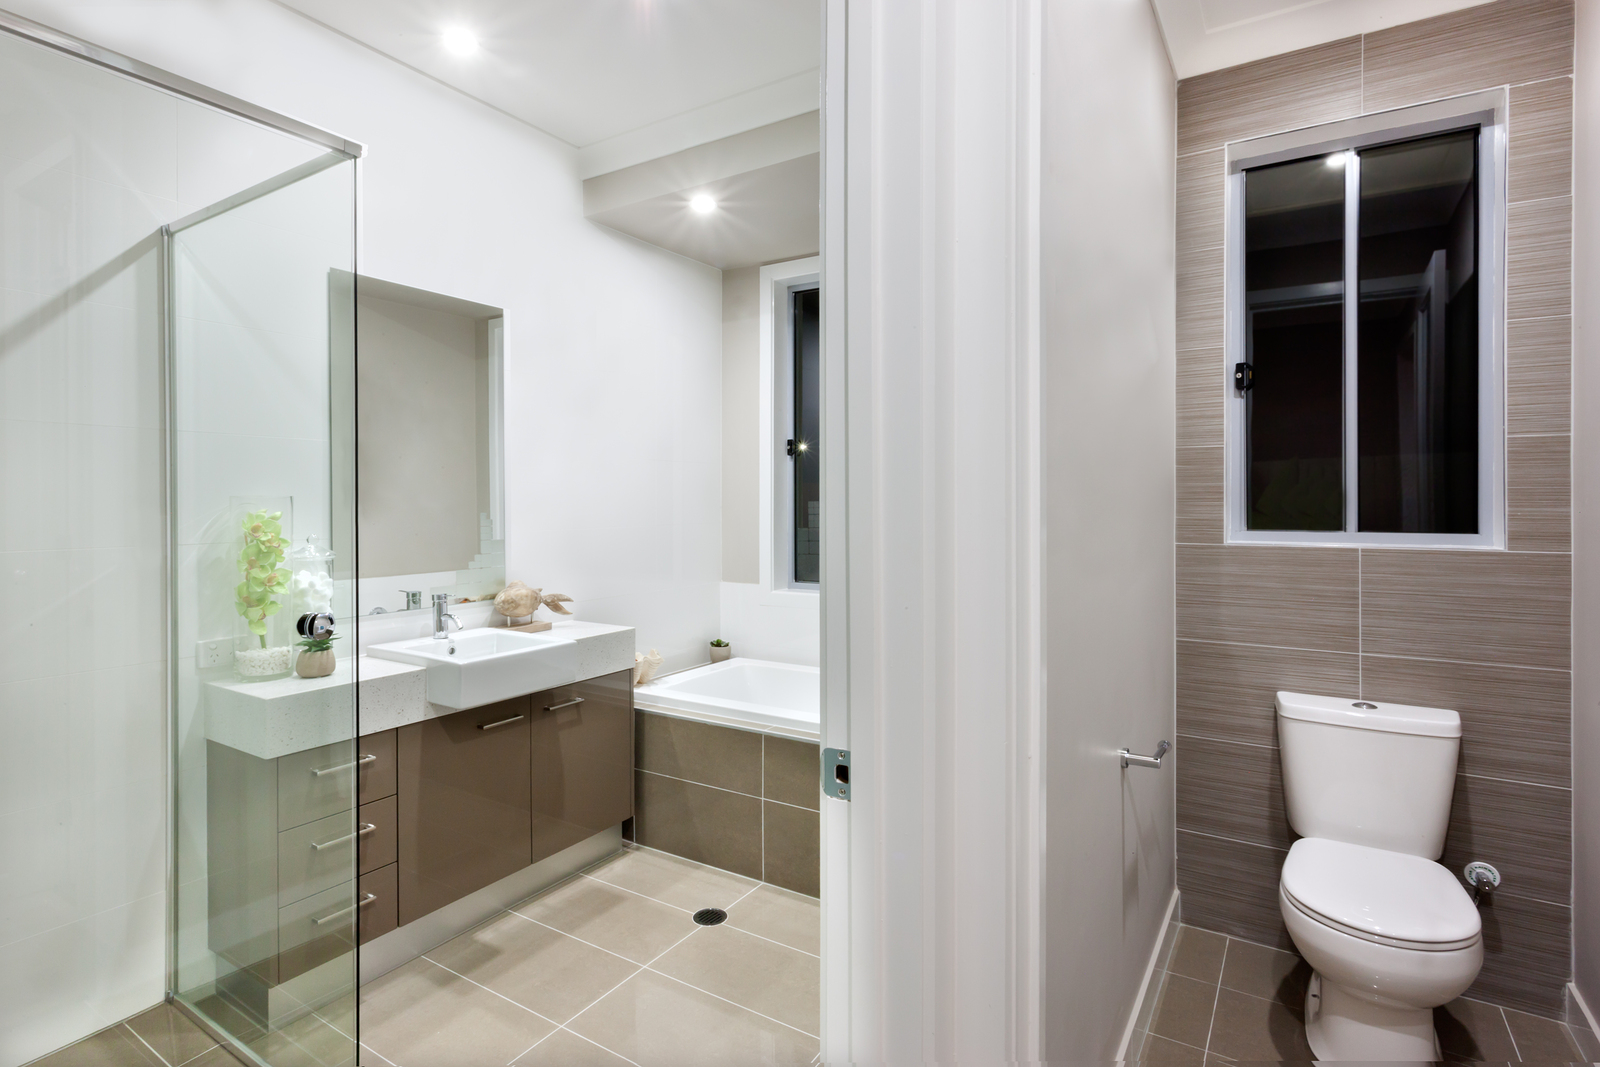 5 of the most common design mistakes to avoid in the bathroom for 5 bathroom mistakes